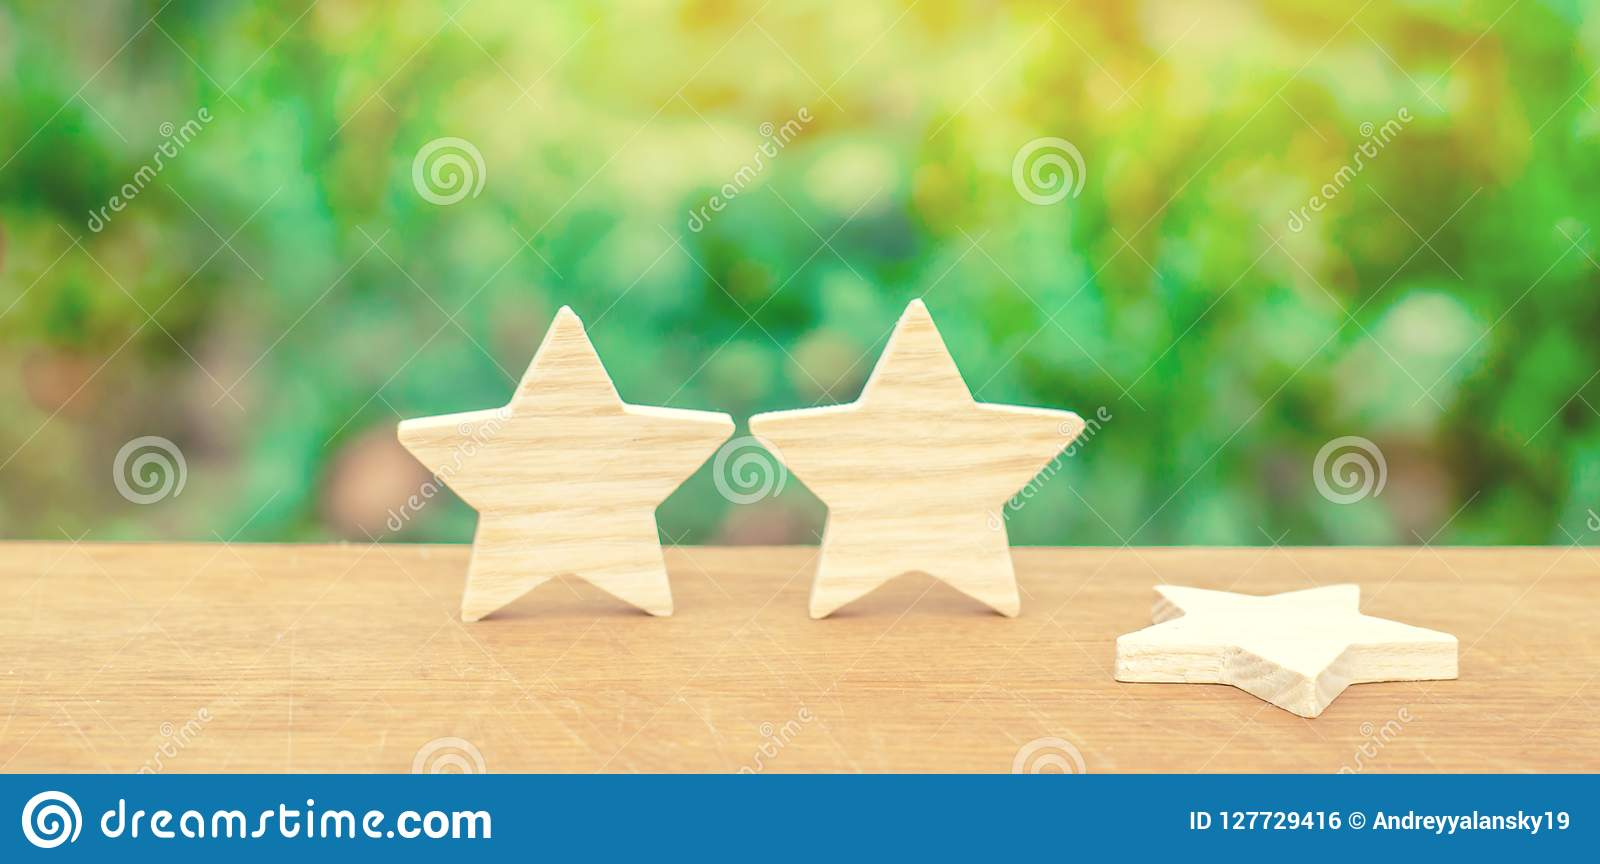 Three stars, a star fell. The concept of a fall in rating and quality. Deprivation of the third star. Feedback on the level